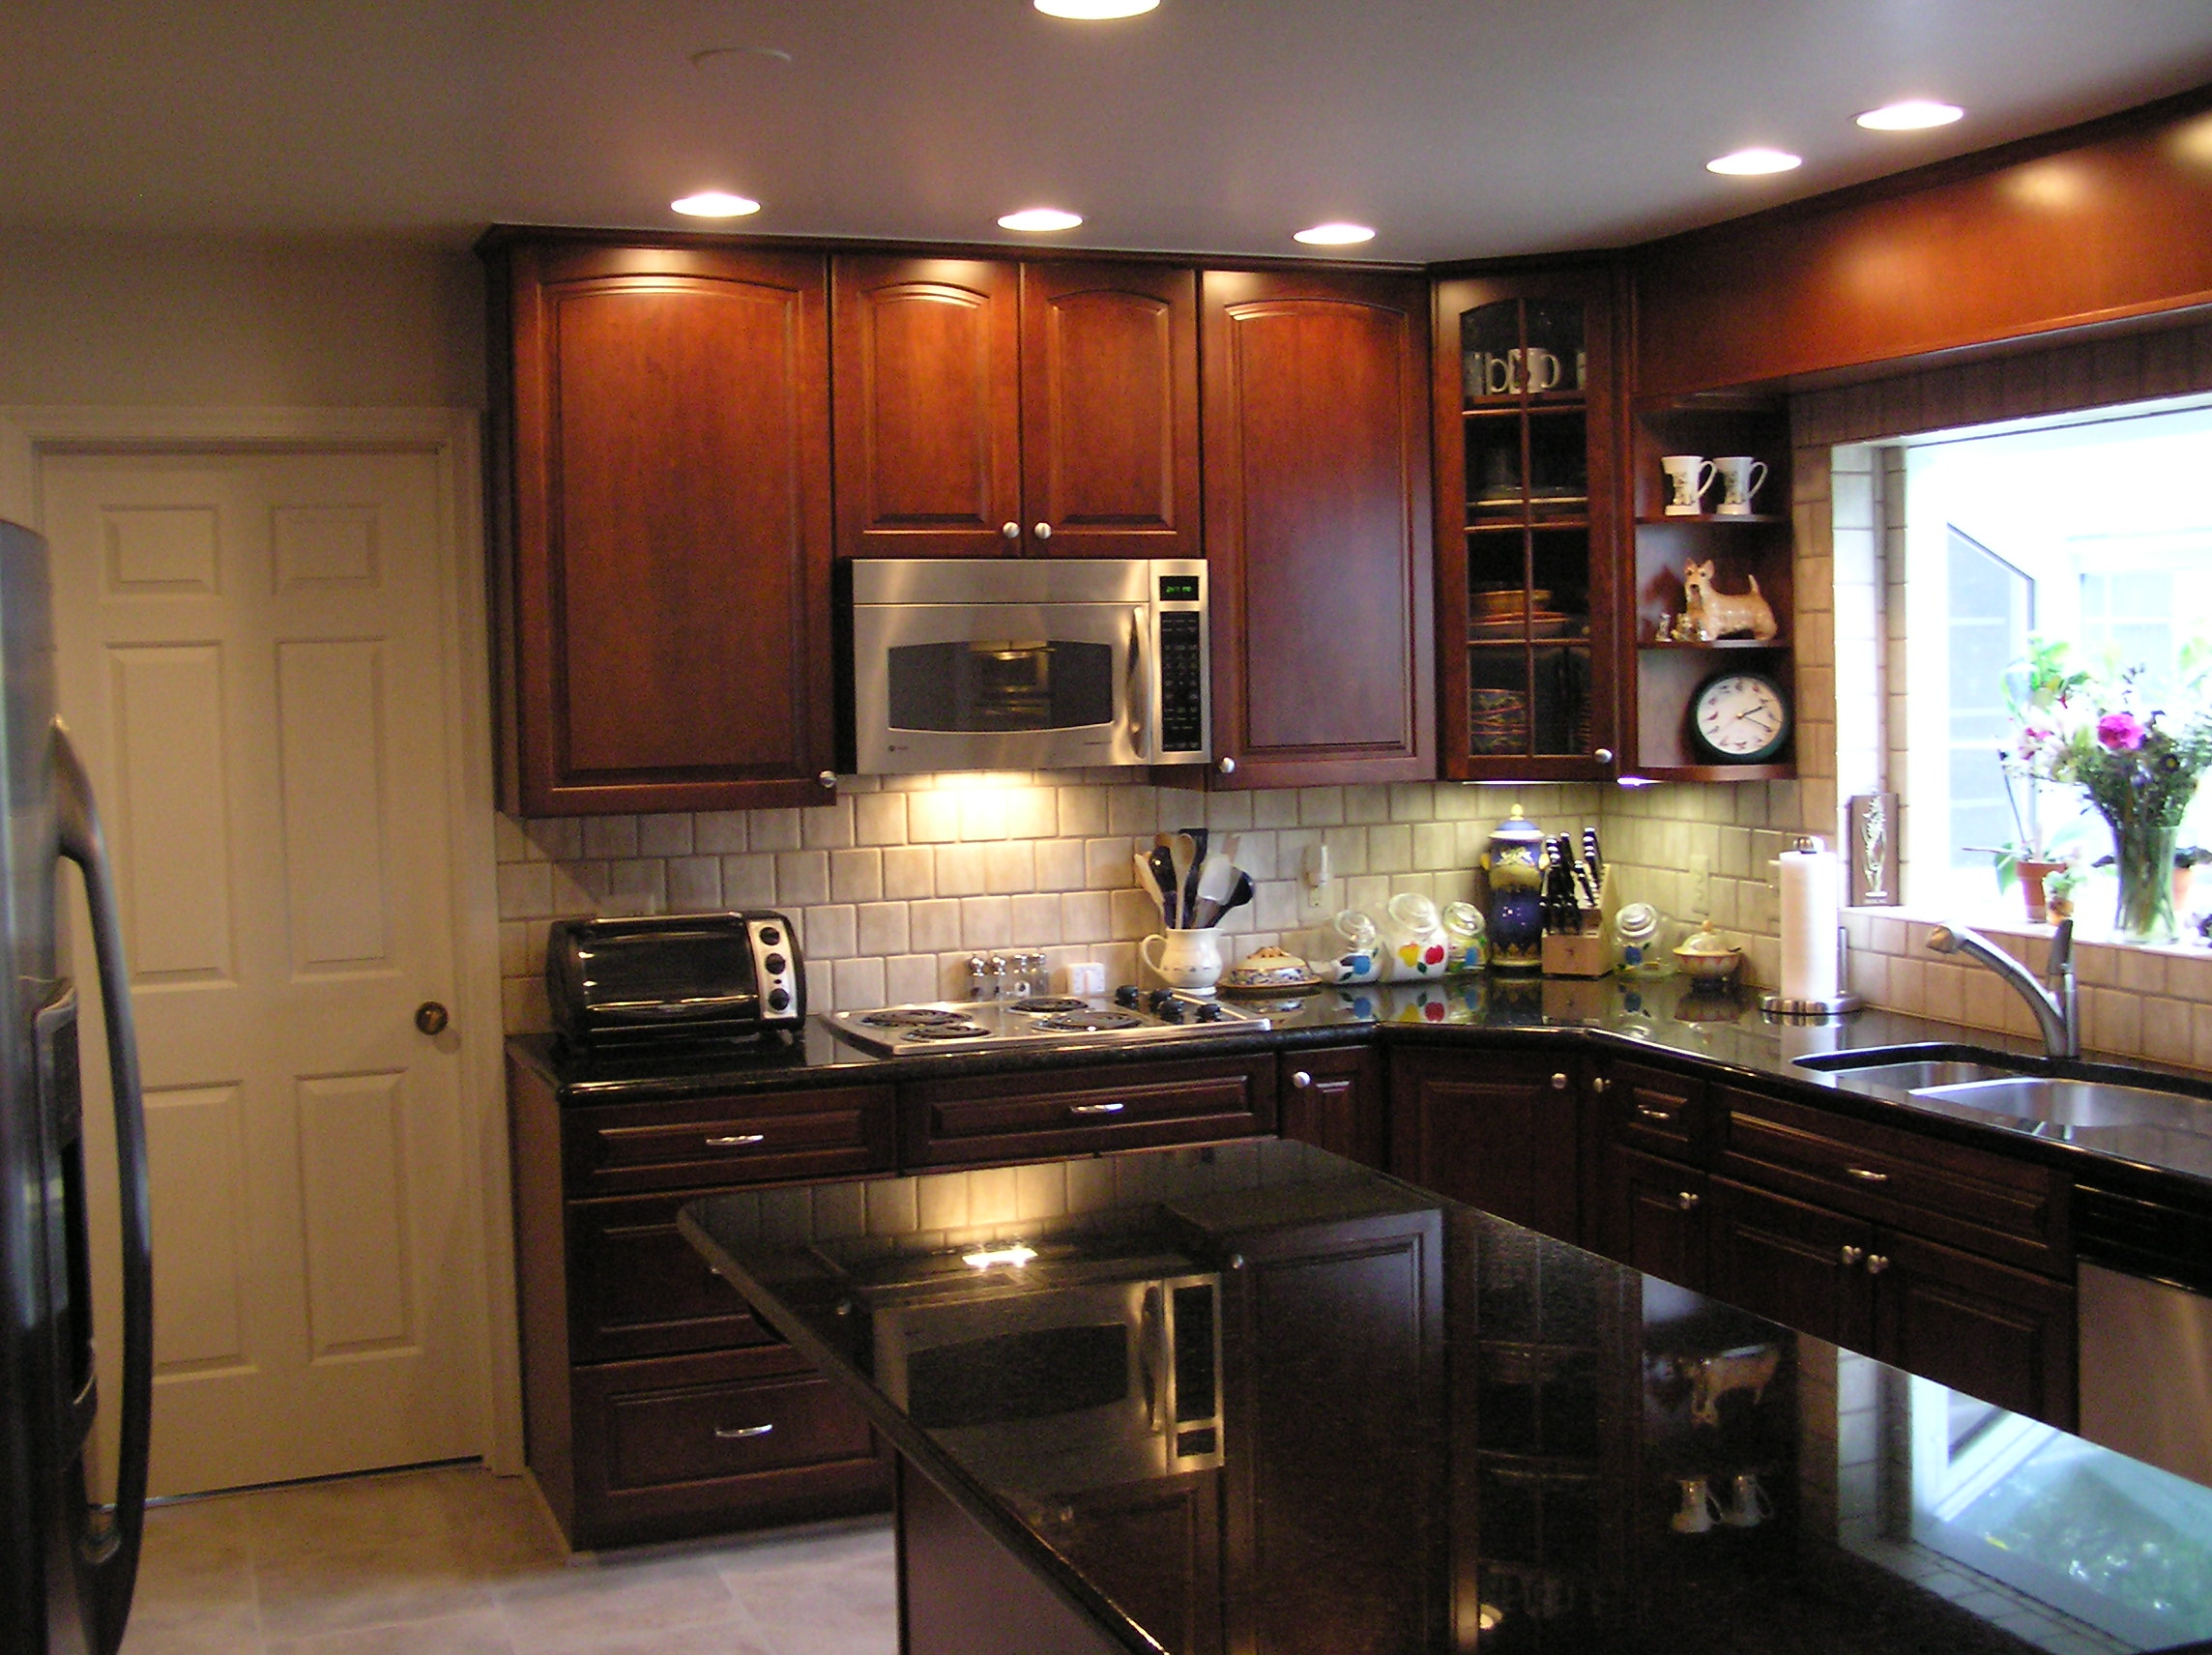 Master Small Kitchen Remodel IdeasSmall Kitchen Remodel Ideas NkyasL8W house remodeling ideas for small homes